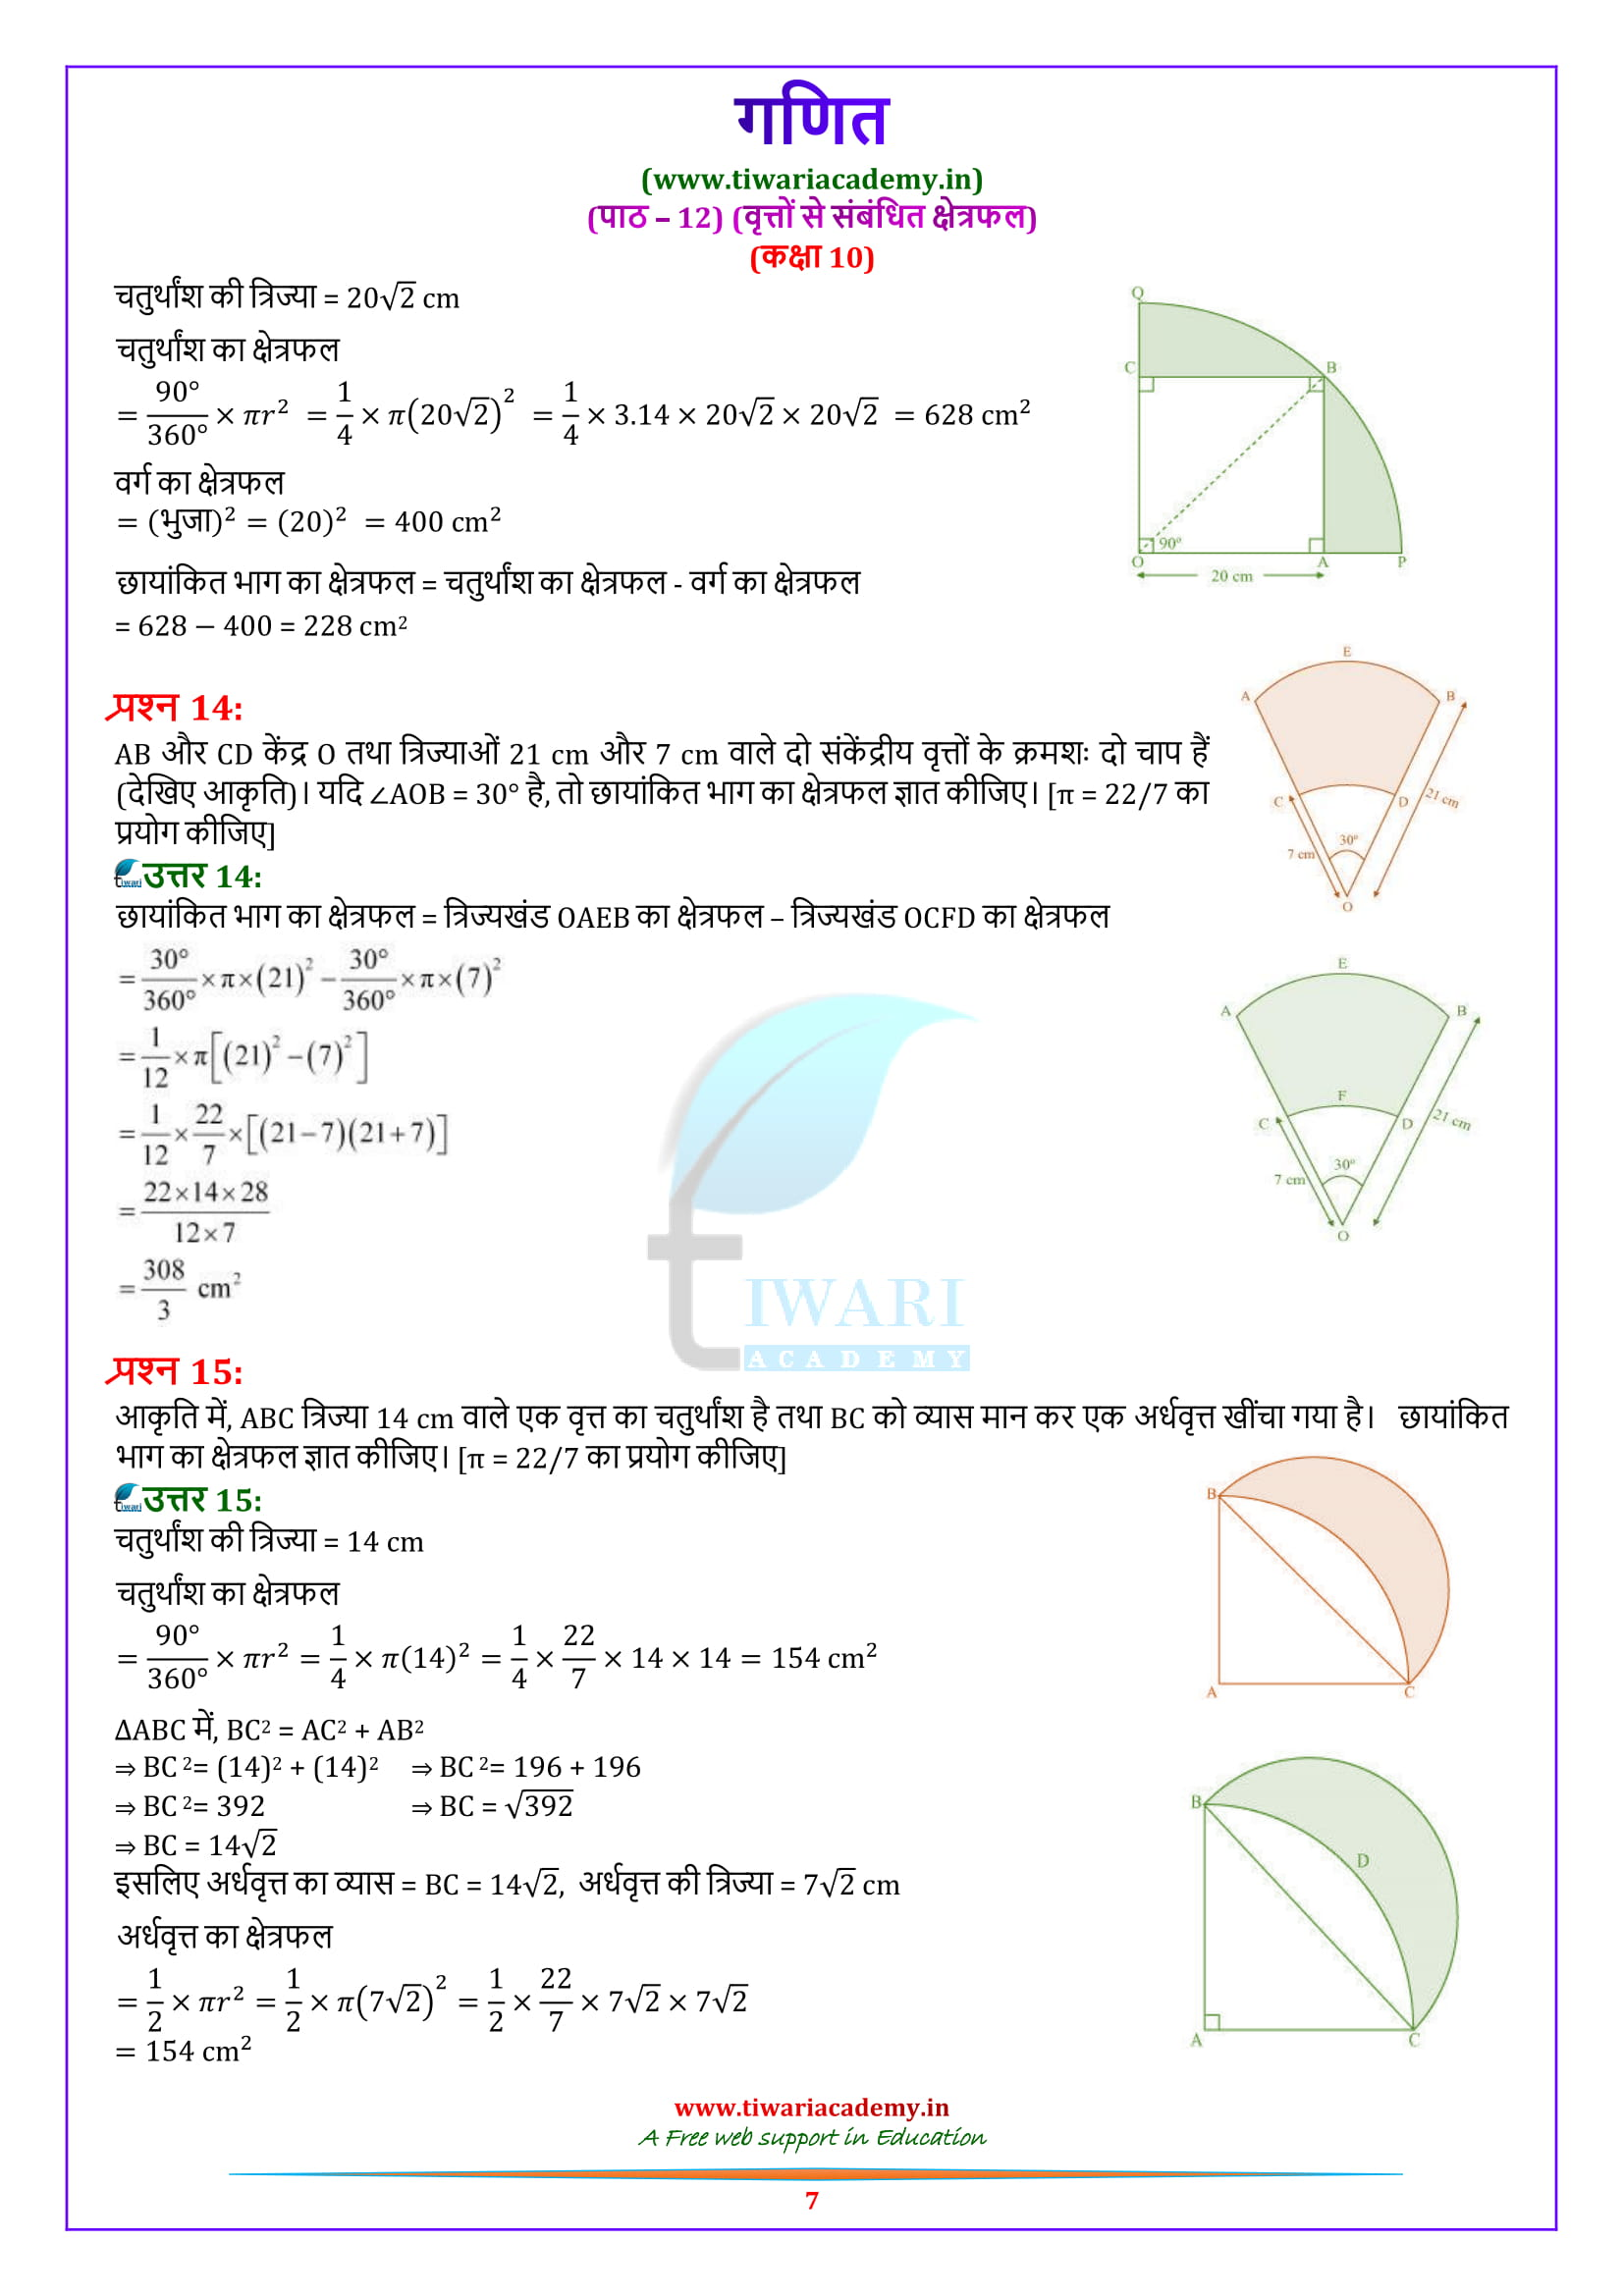 10 Maths Exercise 12.3 solutions updated for 2018-19 feb exam session